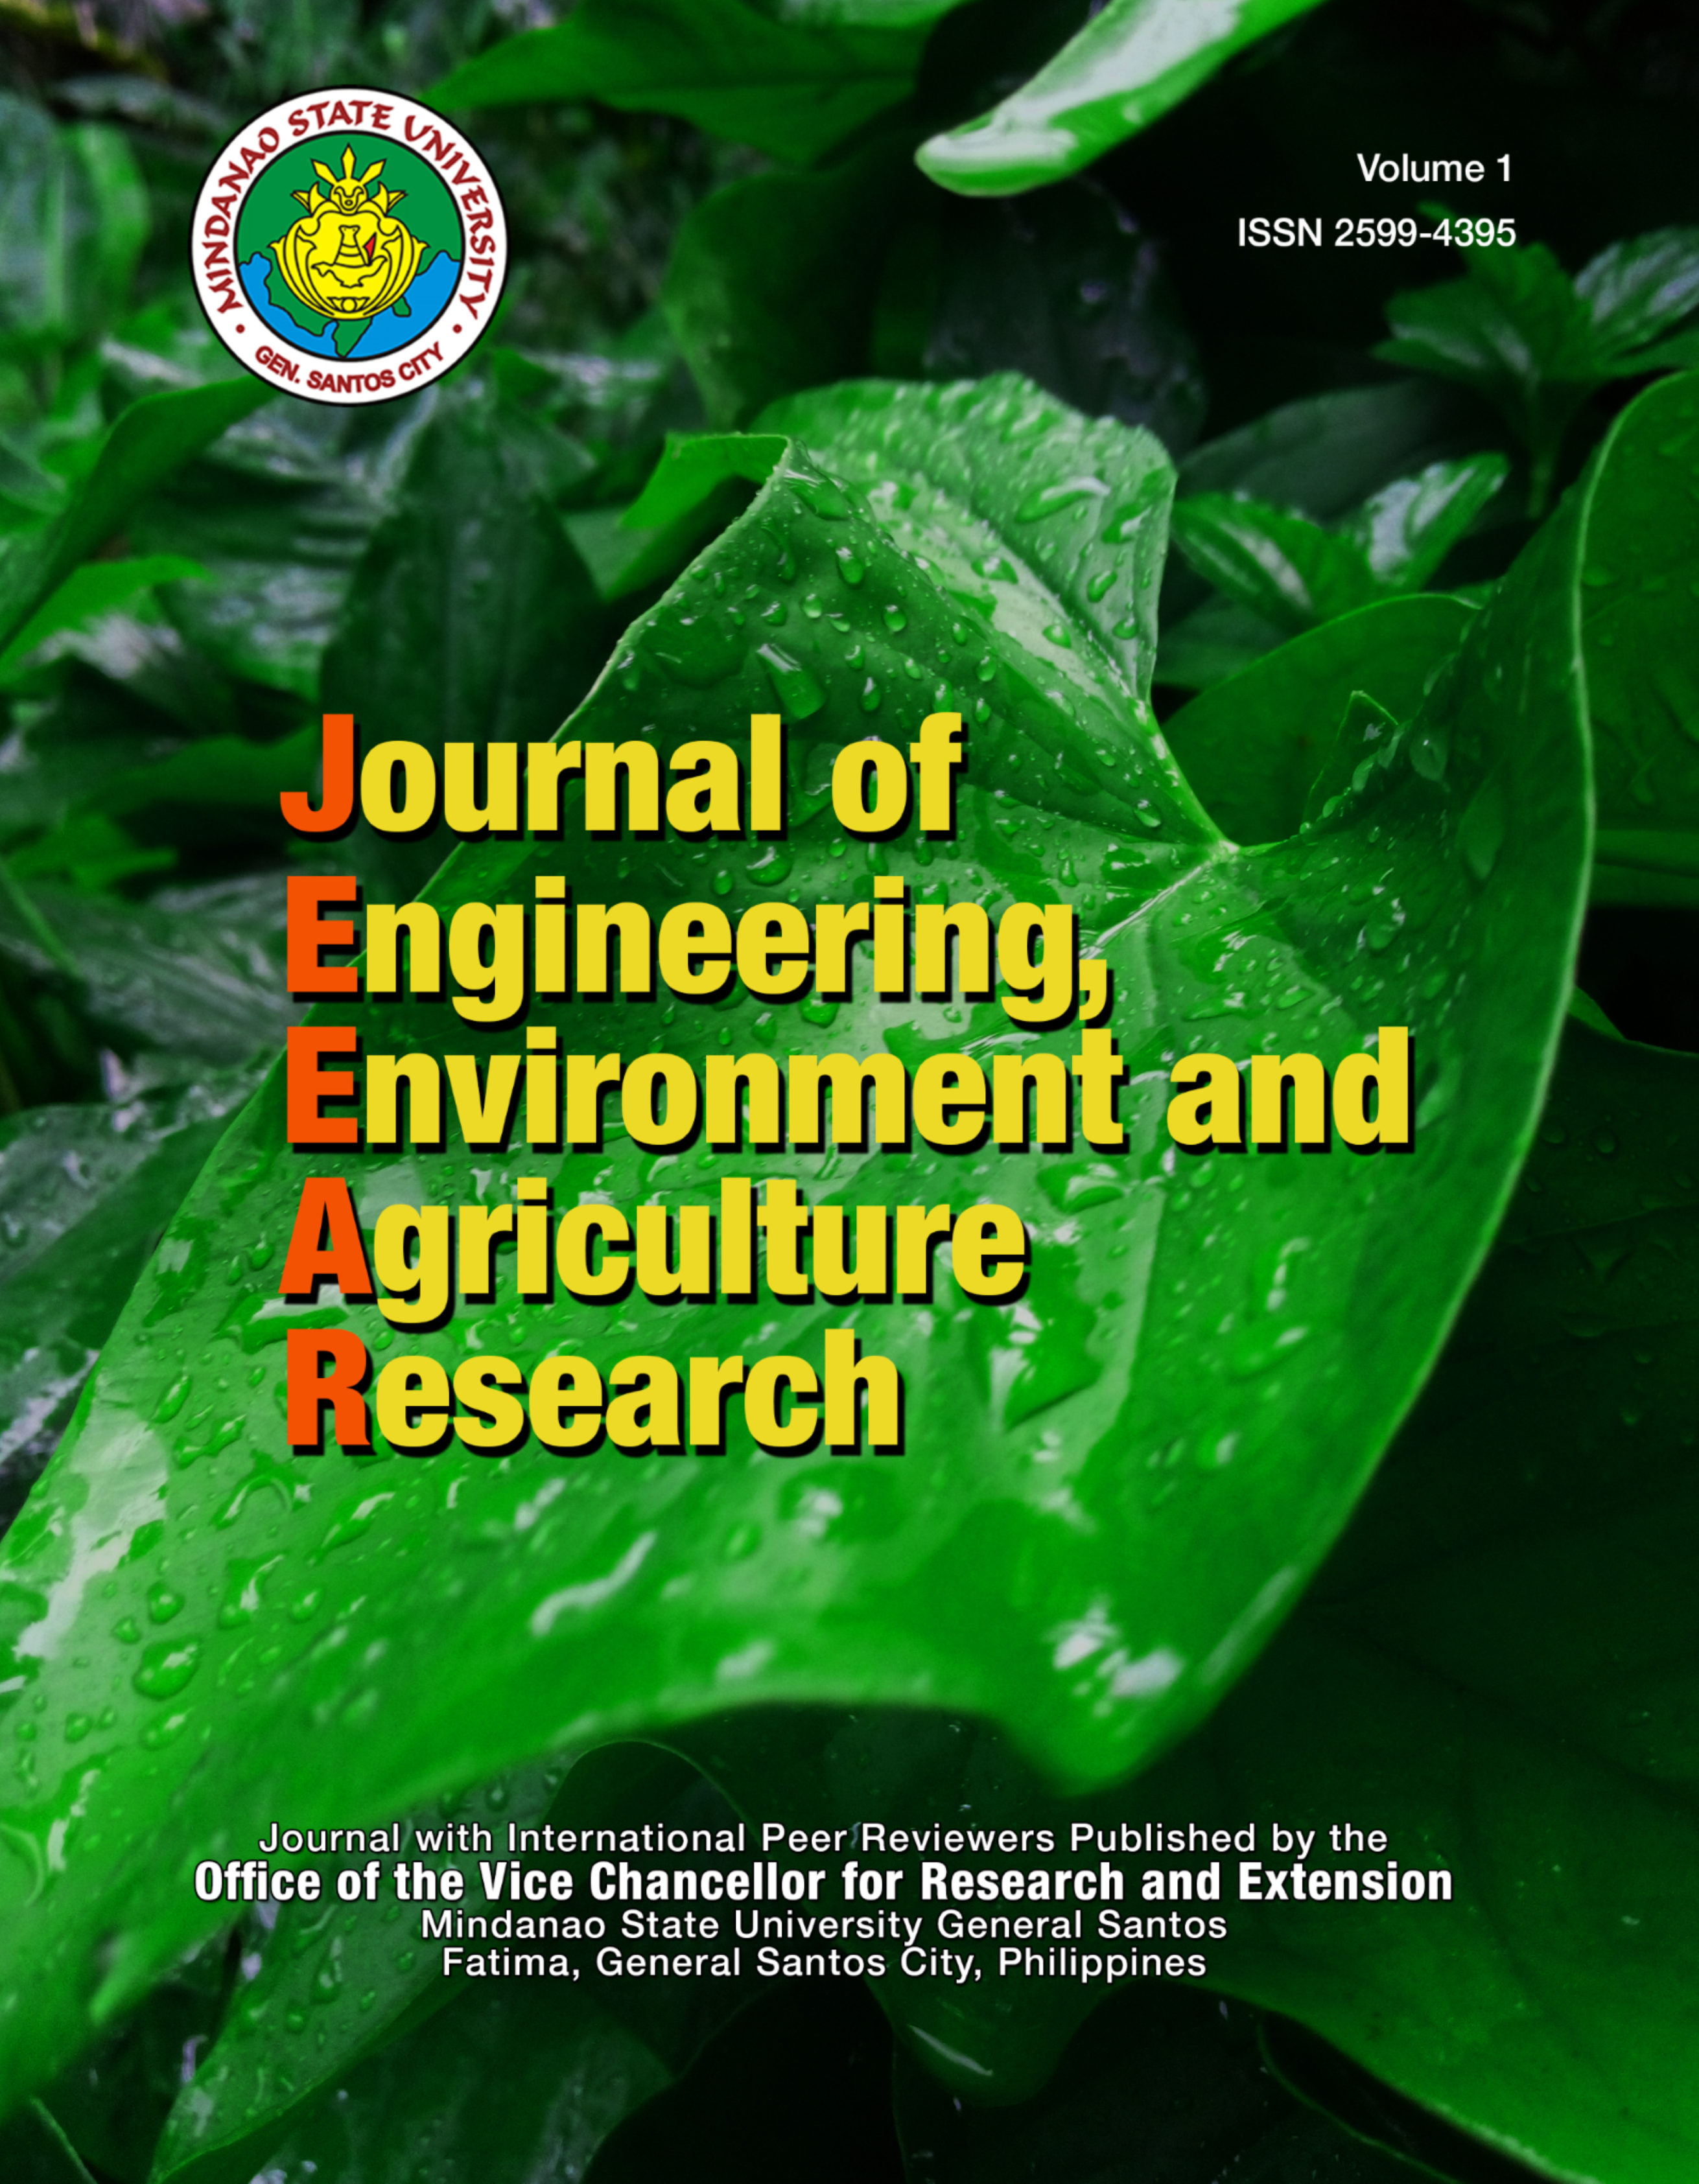 Vol 1 (2018): Journal of Engineering, Environment and